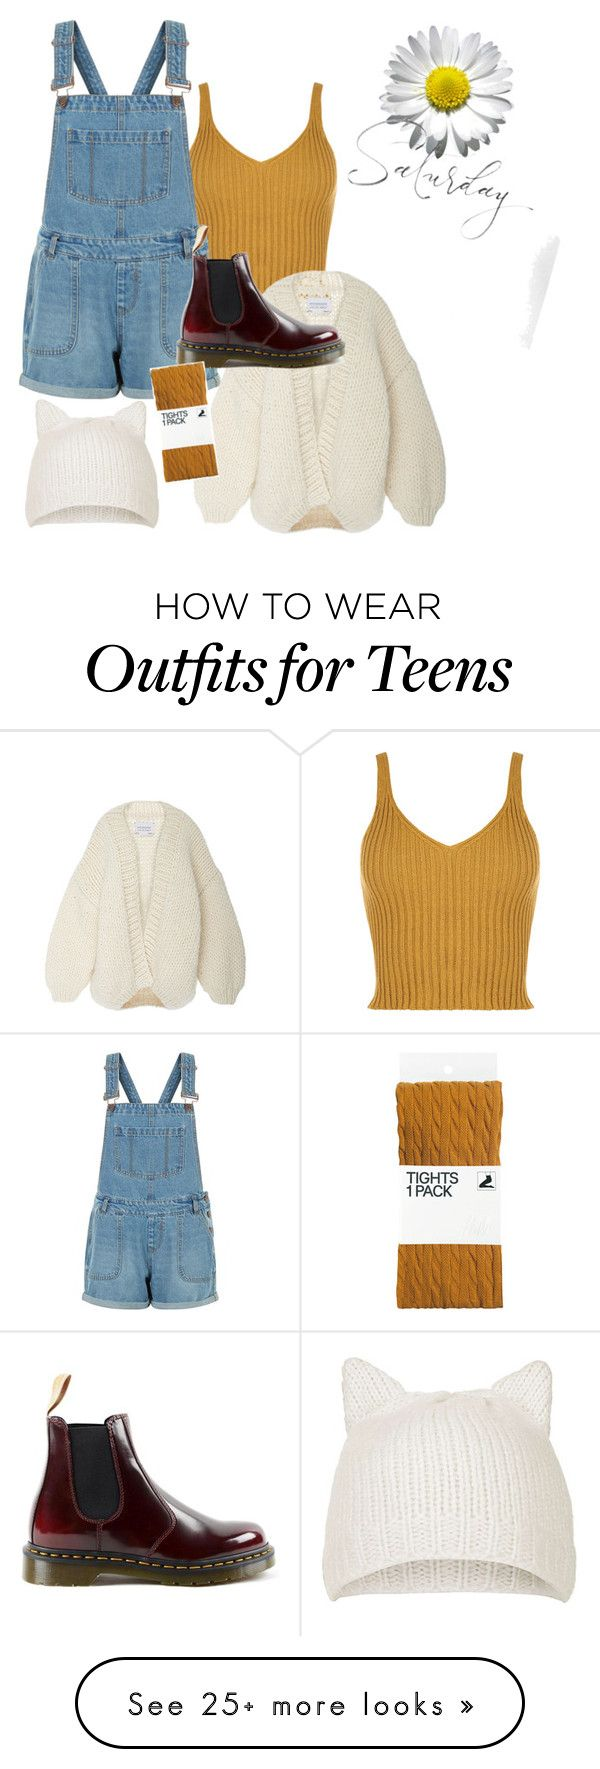 """Satisfy..."" by glittermck on Polyvore featuring WearAll, New Look, I Love Mr. Mittens, Dr. Martens, Topshop and H&M"